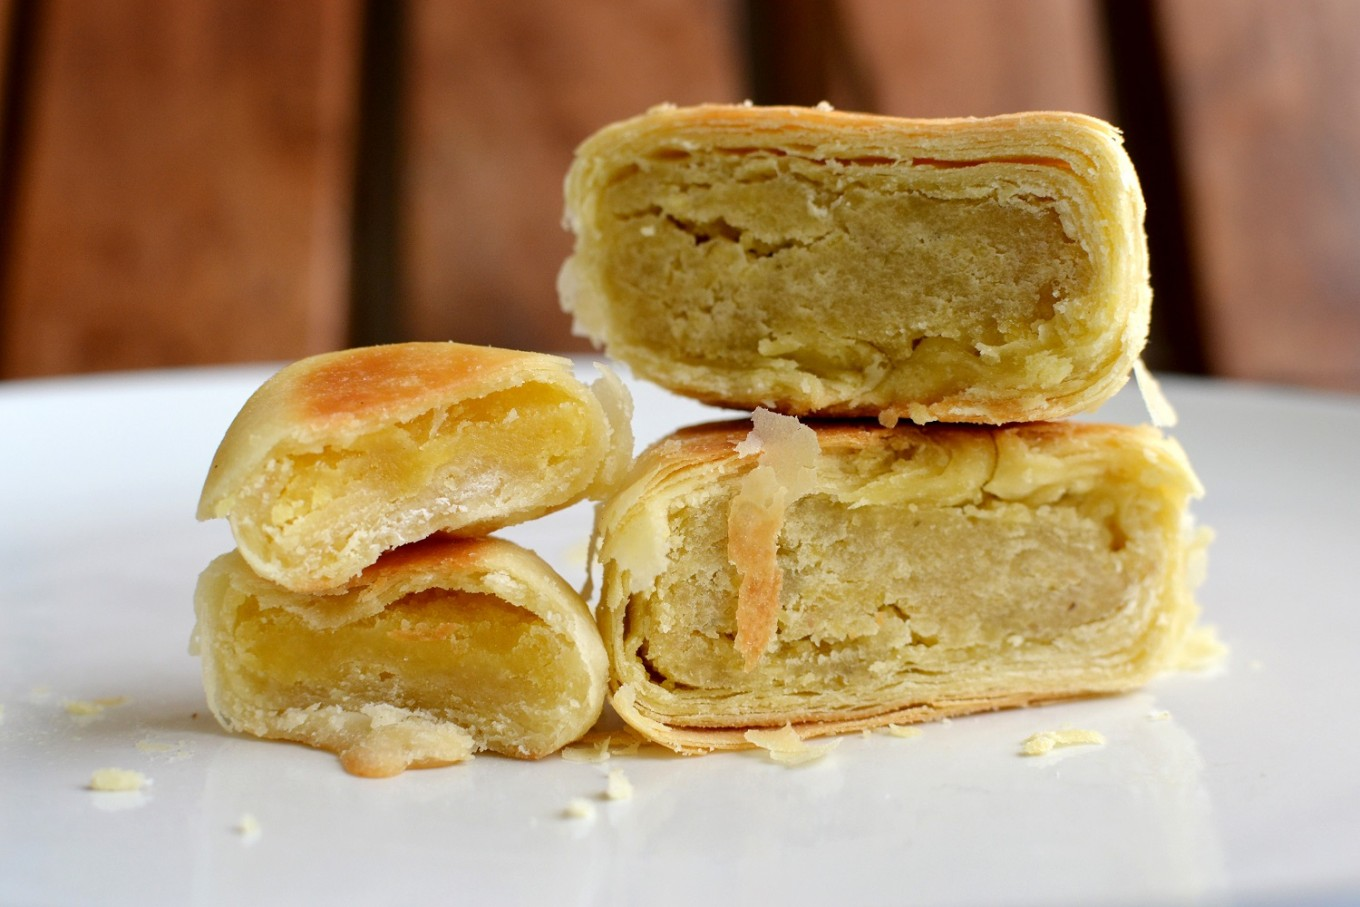 Yogyakarta-style bakpia has thicker and chewier dough. Meanwhile, Surakarta-style bakpia has a flaky texture and is chock-full of filling.